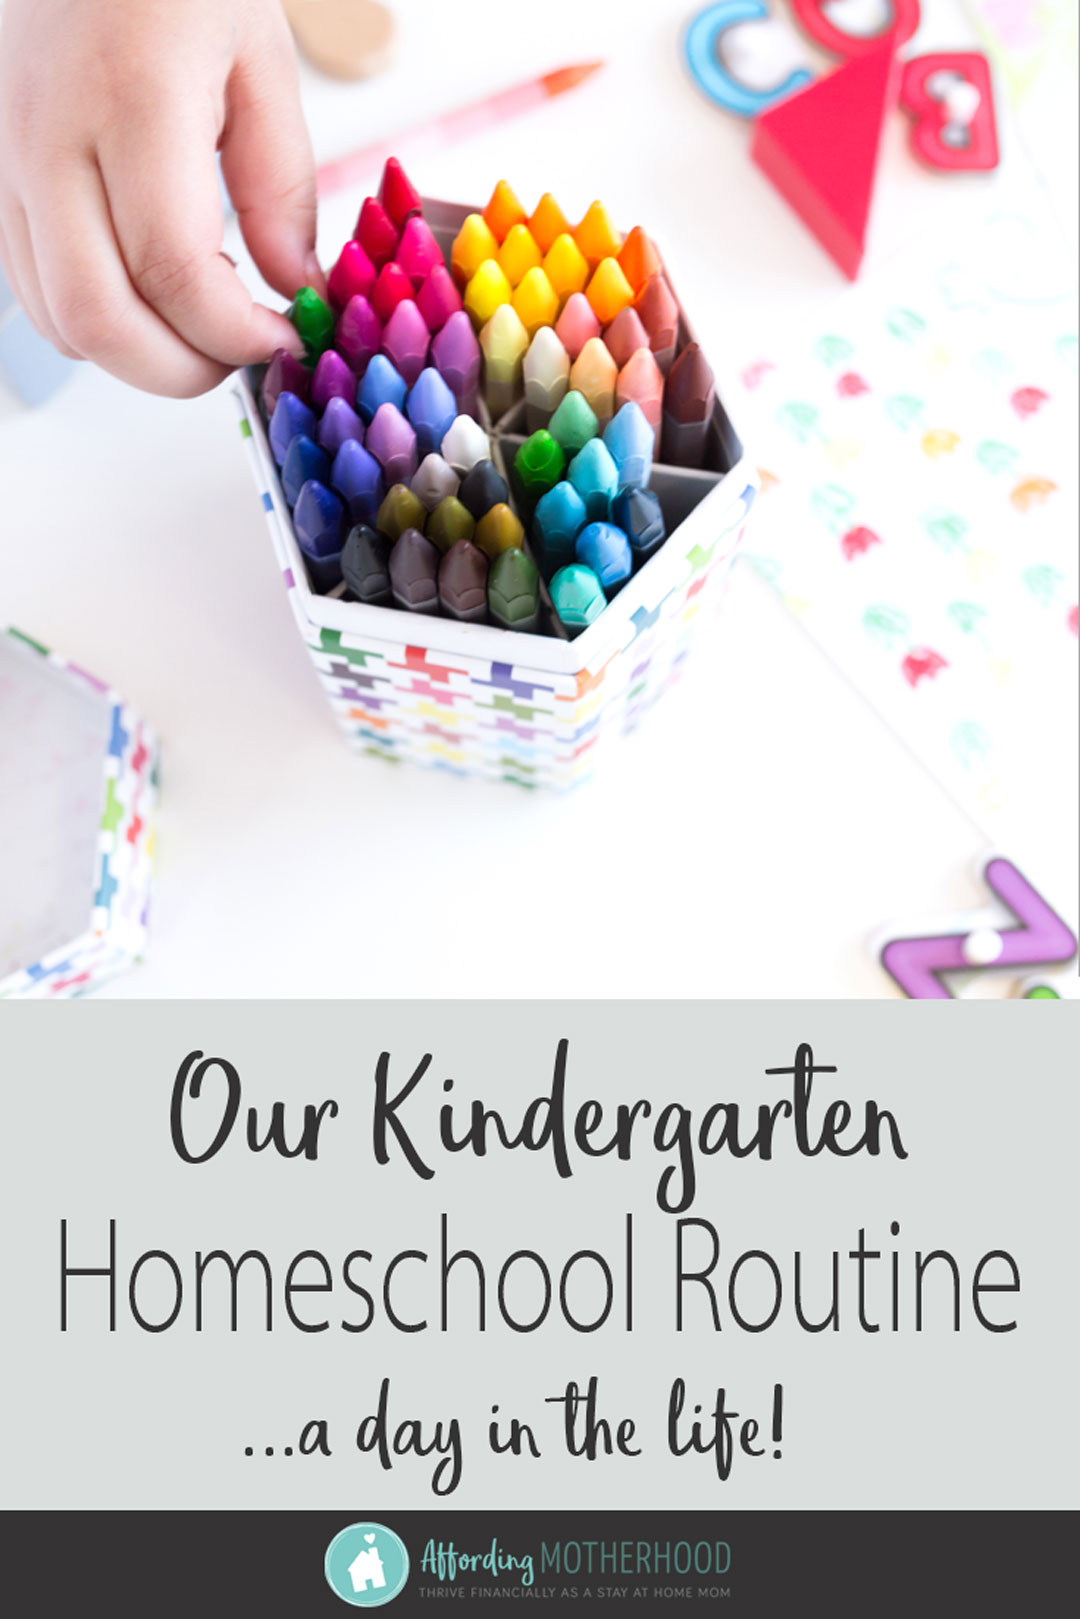 What do you get when you add one smart kindergarten student, one work-at-home mom and busy two year old? Well, it's a day in the life of our kindergarten homeschool schedule. Despite my initial feelings overwhelm, by the end of the year we'd fallen into a peaceful homeschool routine. I've included all the details, complete kindergarten homeschool ideas for you, plus what to do with the toddler during school, right here!